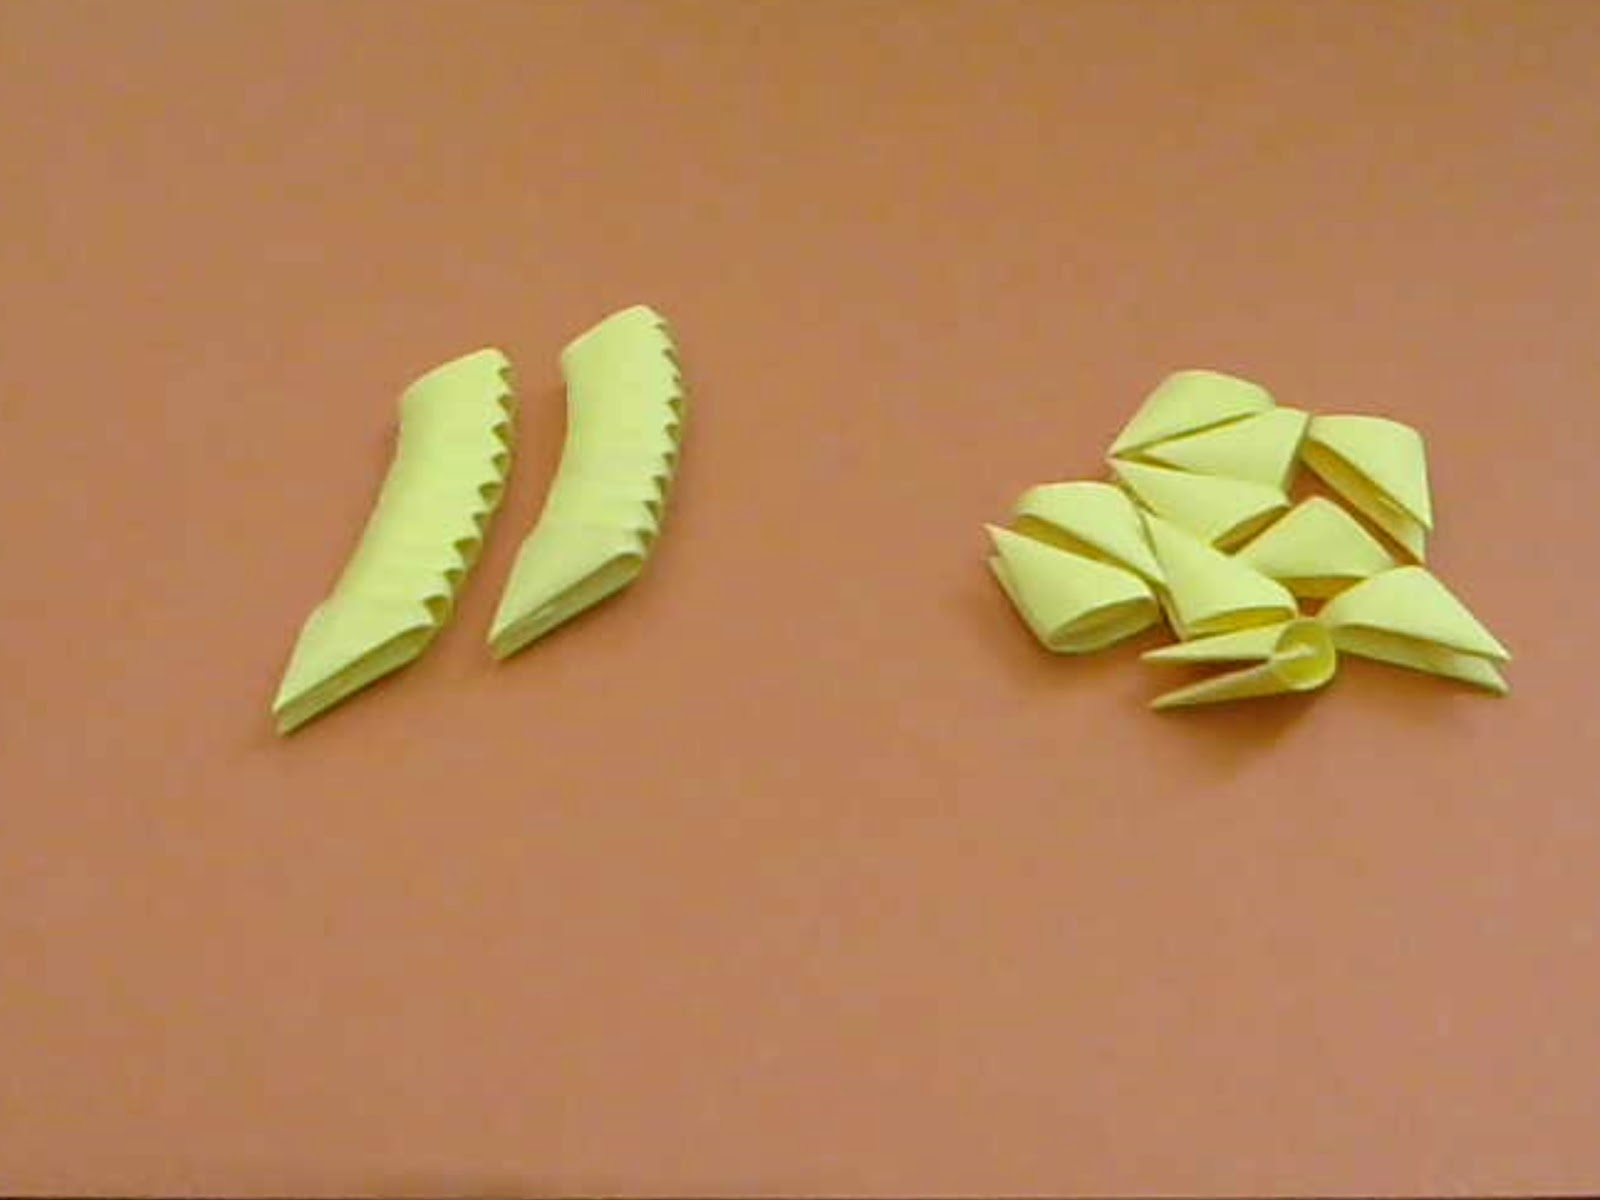 Razcapapercraft How To Make 3D Origami Pieces